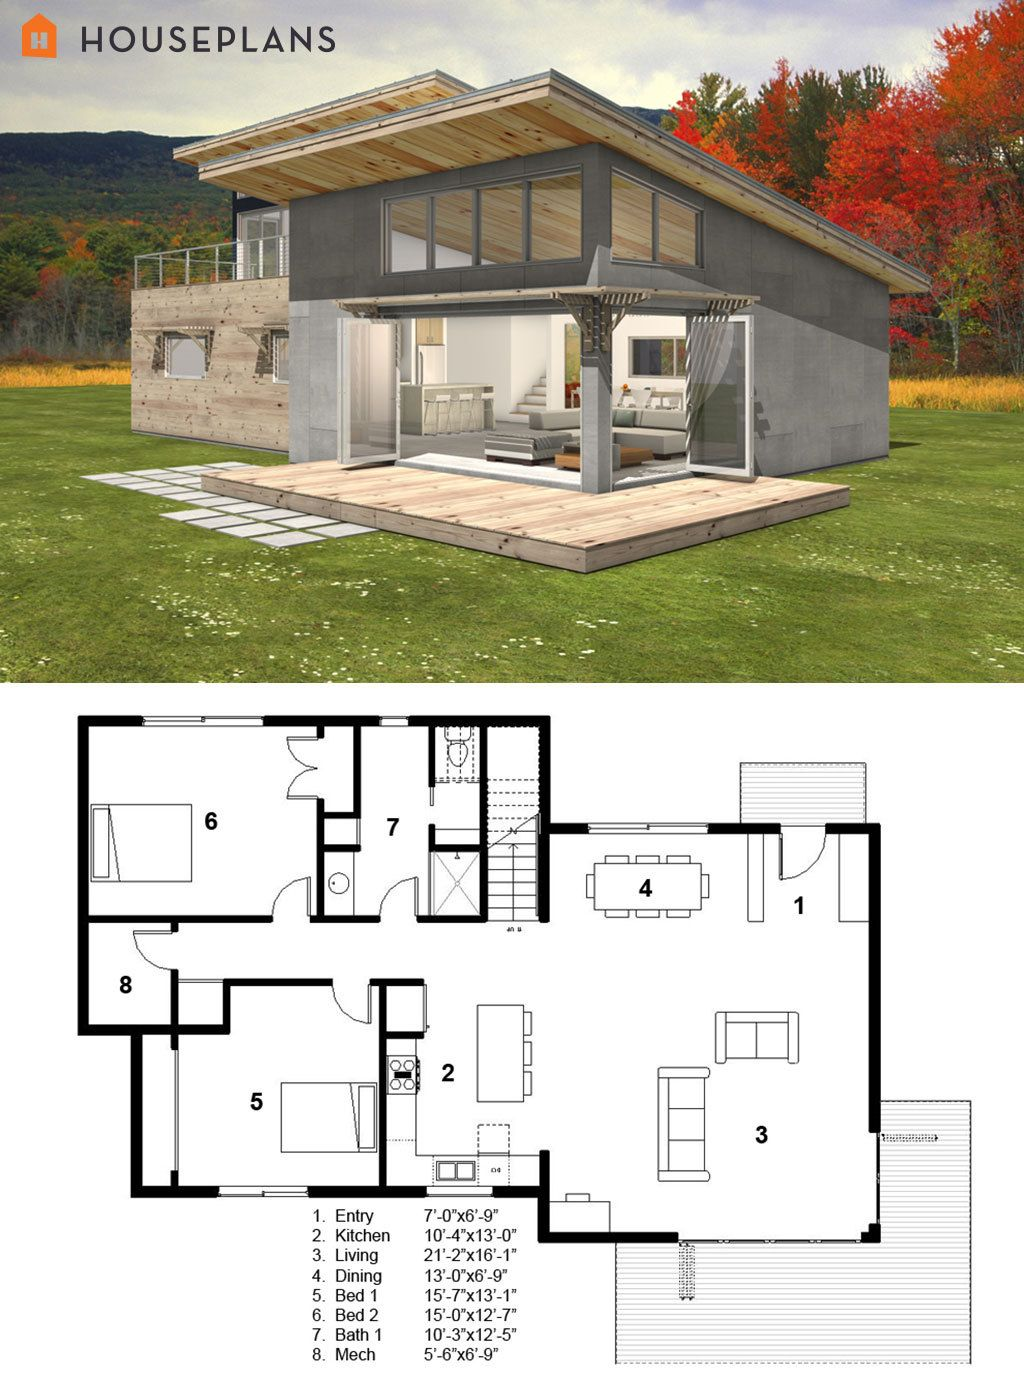 Small modern cabin house plan by freegreen energy Small modern mountain house plans